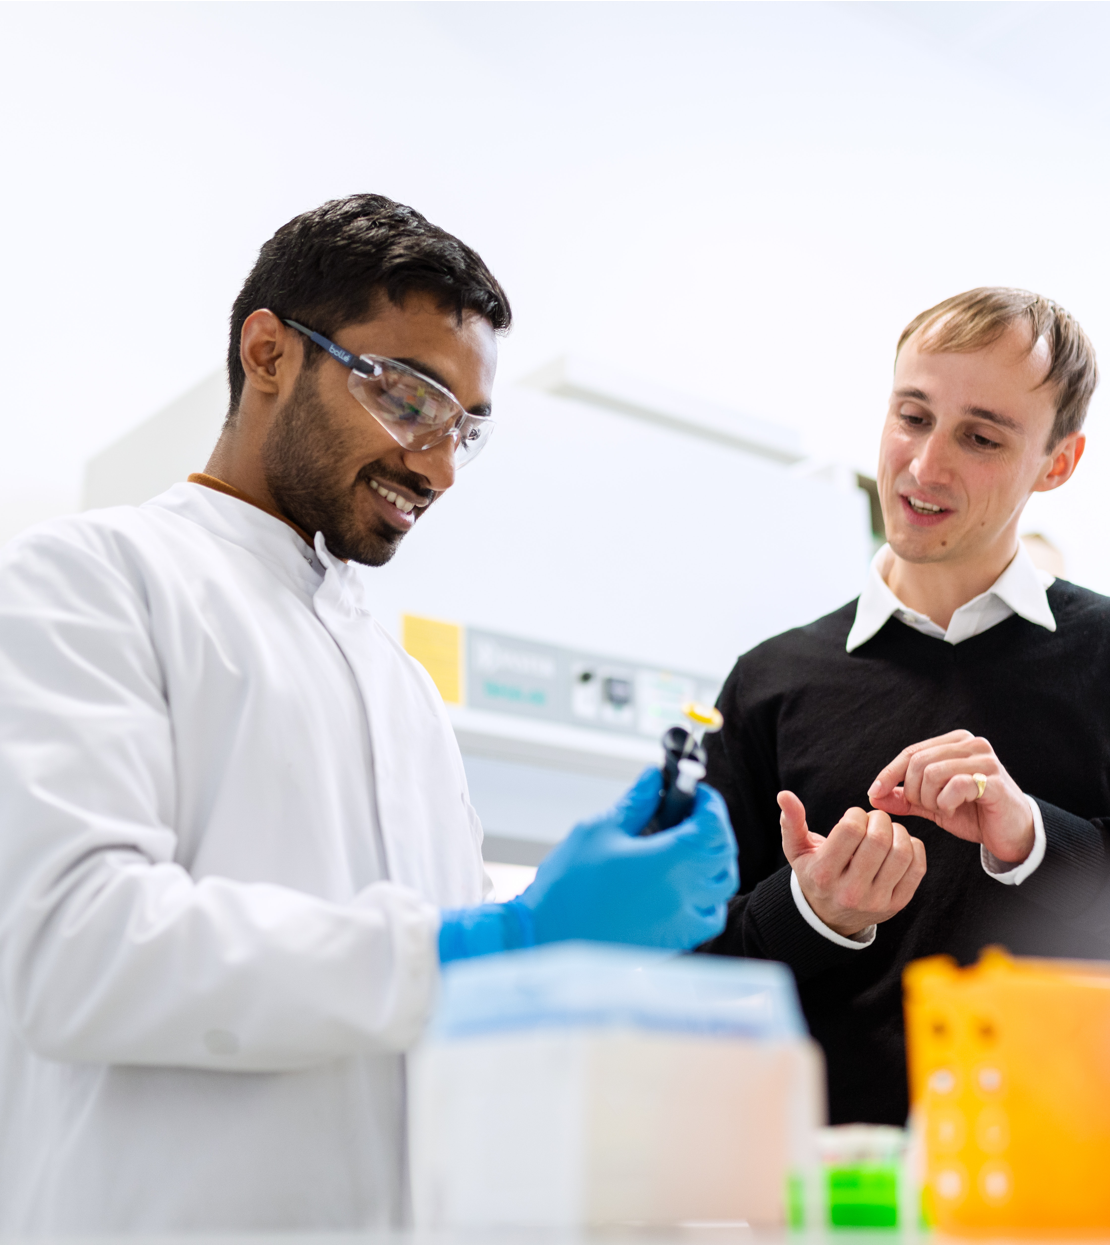 physician and researcher in a lab